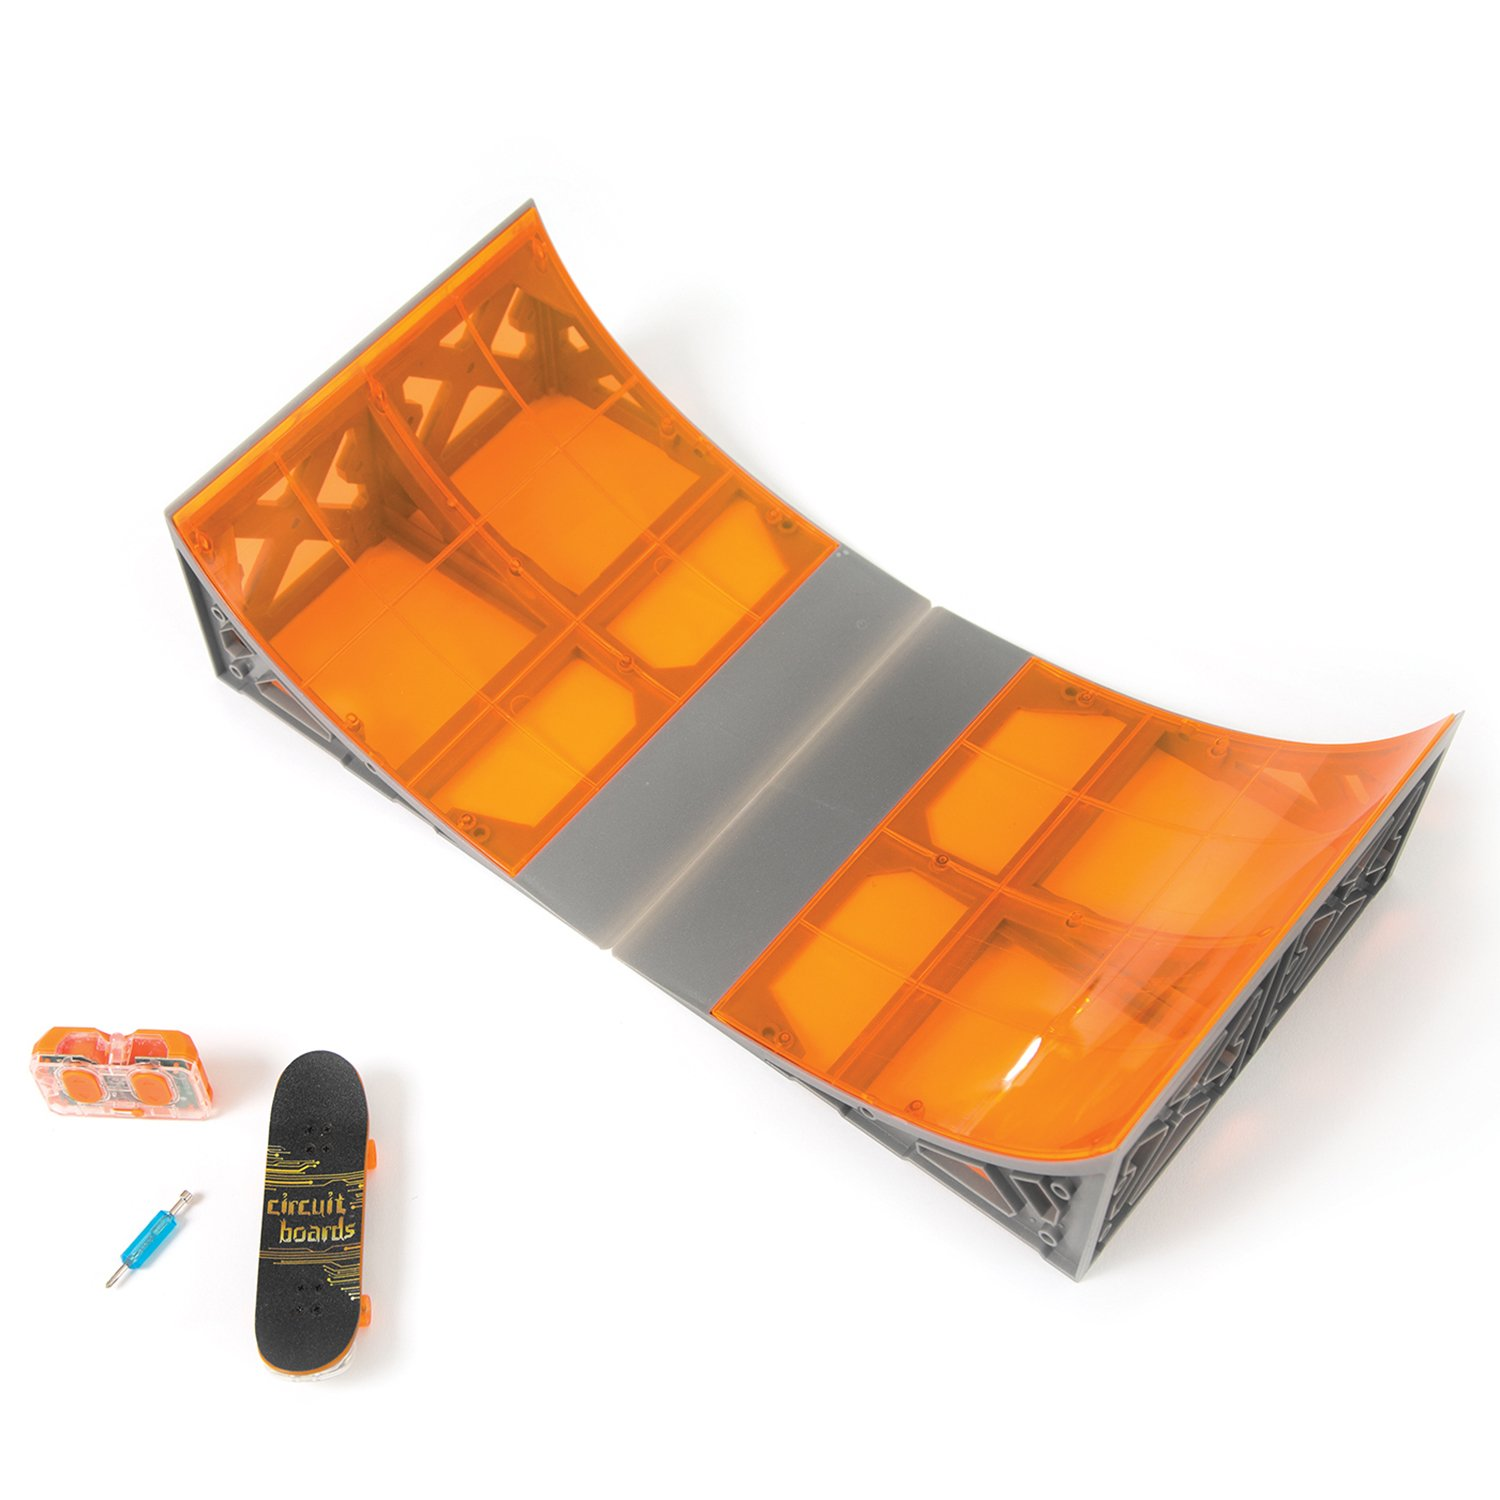 Tony Hawk Circuit Boards Remote Control Skateboard Halfpipe Ramp -Colours May Vary by HEXBUG (Image #1)